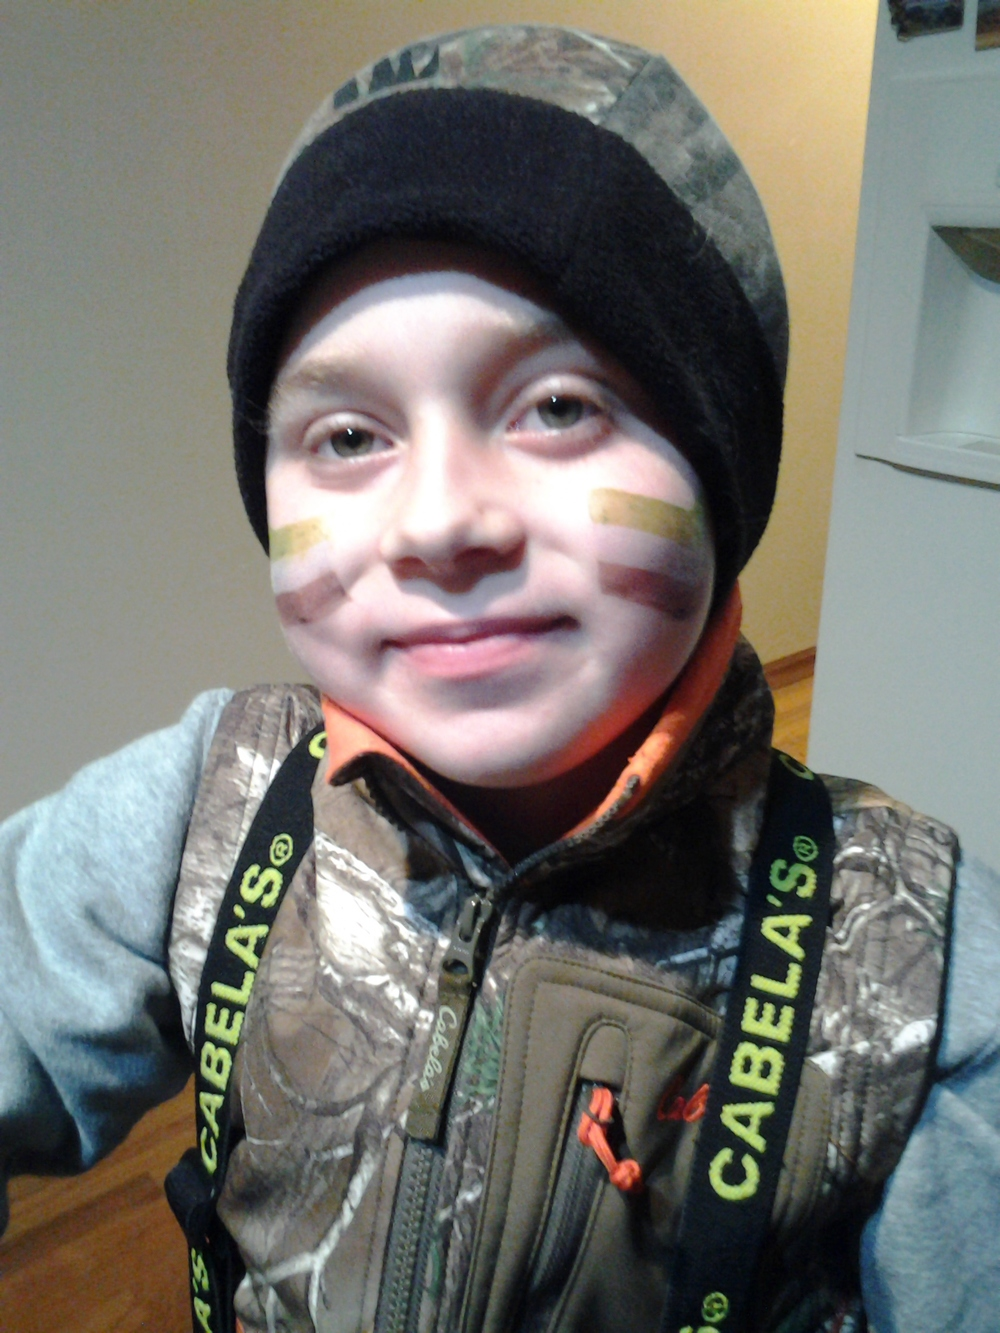 Getting read for his first Deer Hunt in 2014 at Maumee Bay State Park with the Wheeling Sportsmens Club.